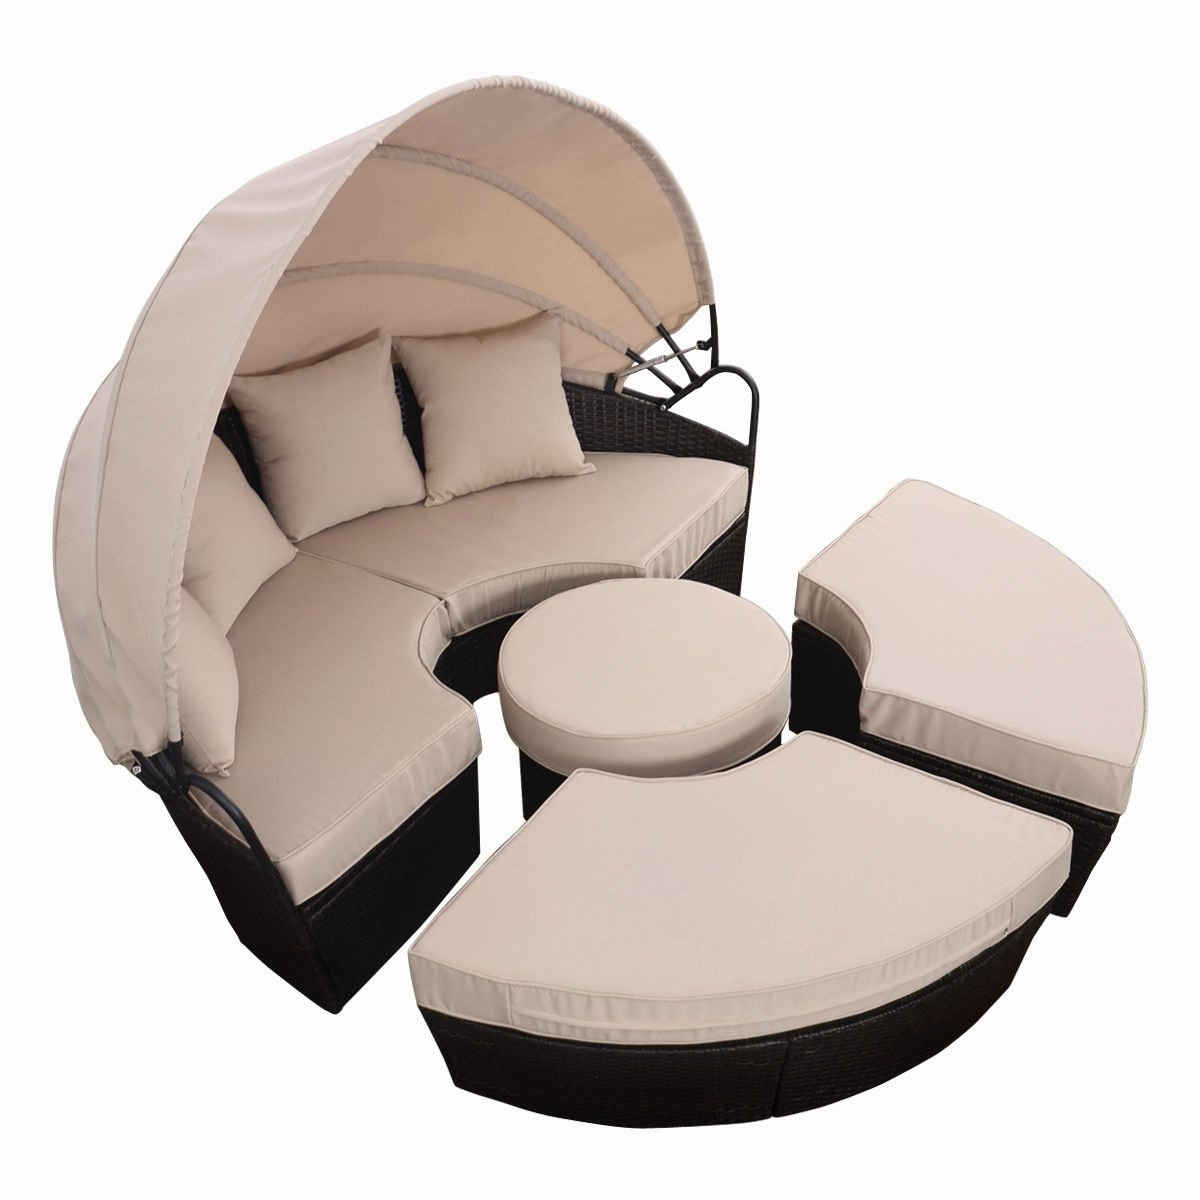 Shop Costway Rattan Sofa Furniture Round Retractable W/canopy Daybed Within Recent Round Sofa Chairs (View 9 of 20)